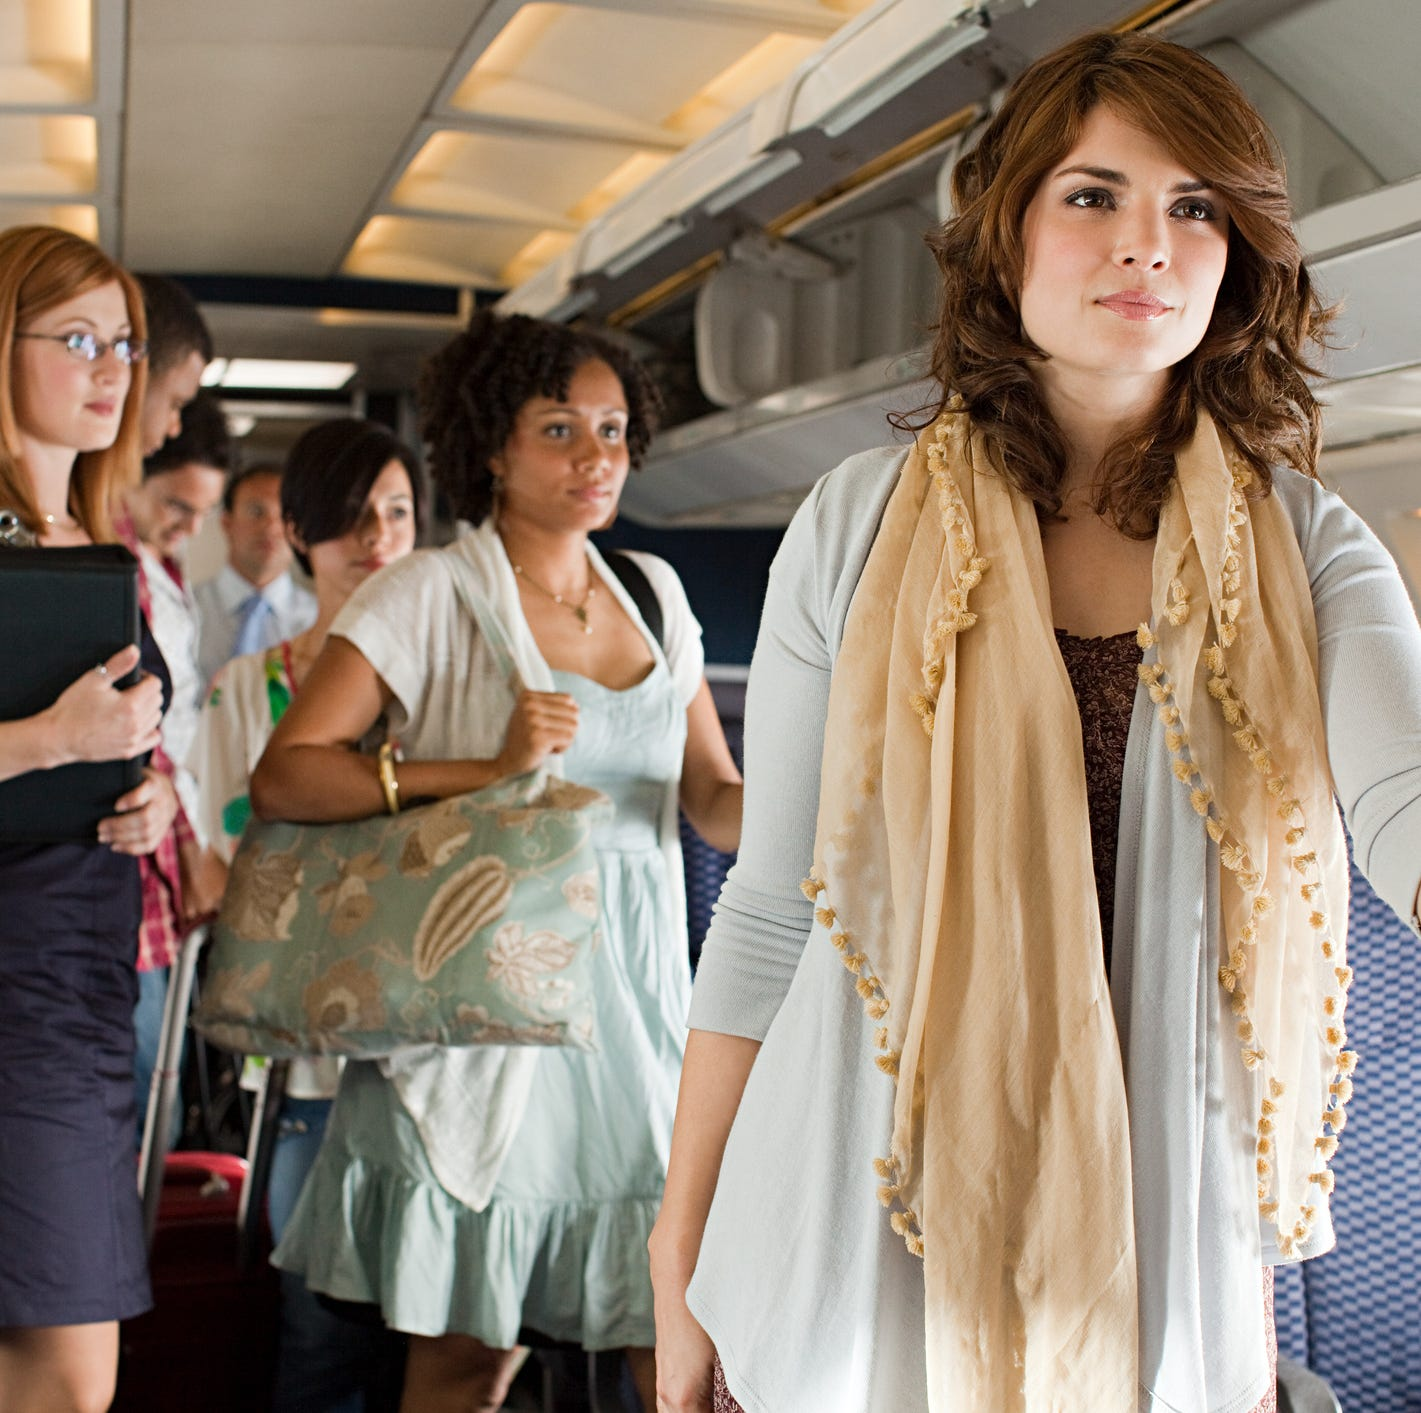 Tips to make air travel easier and more comfortable